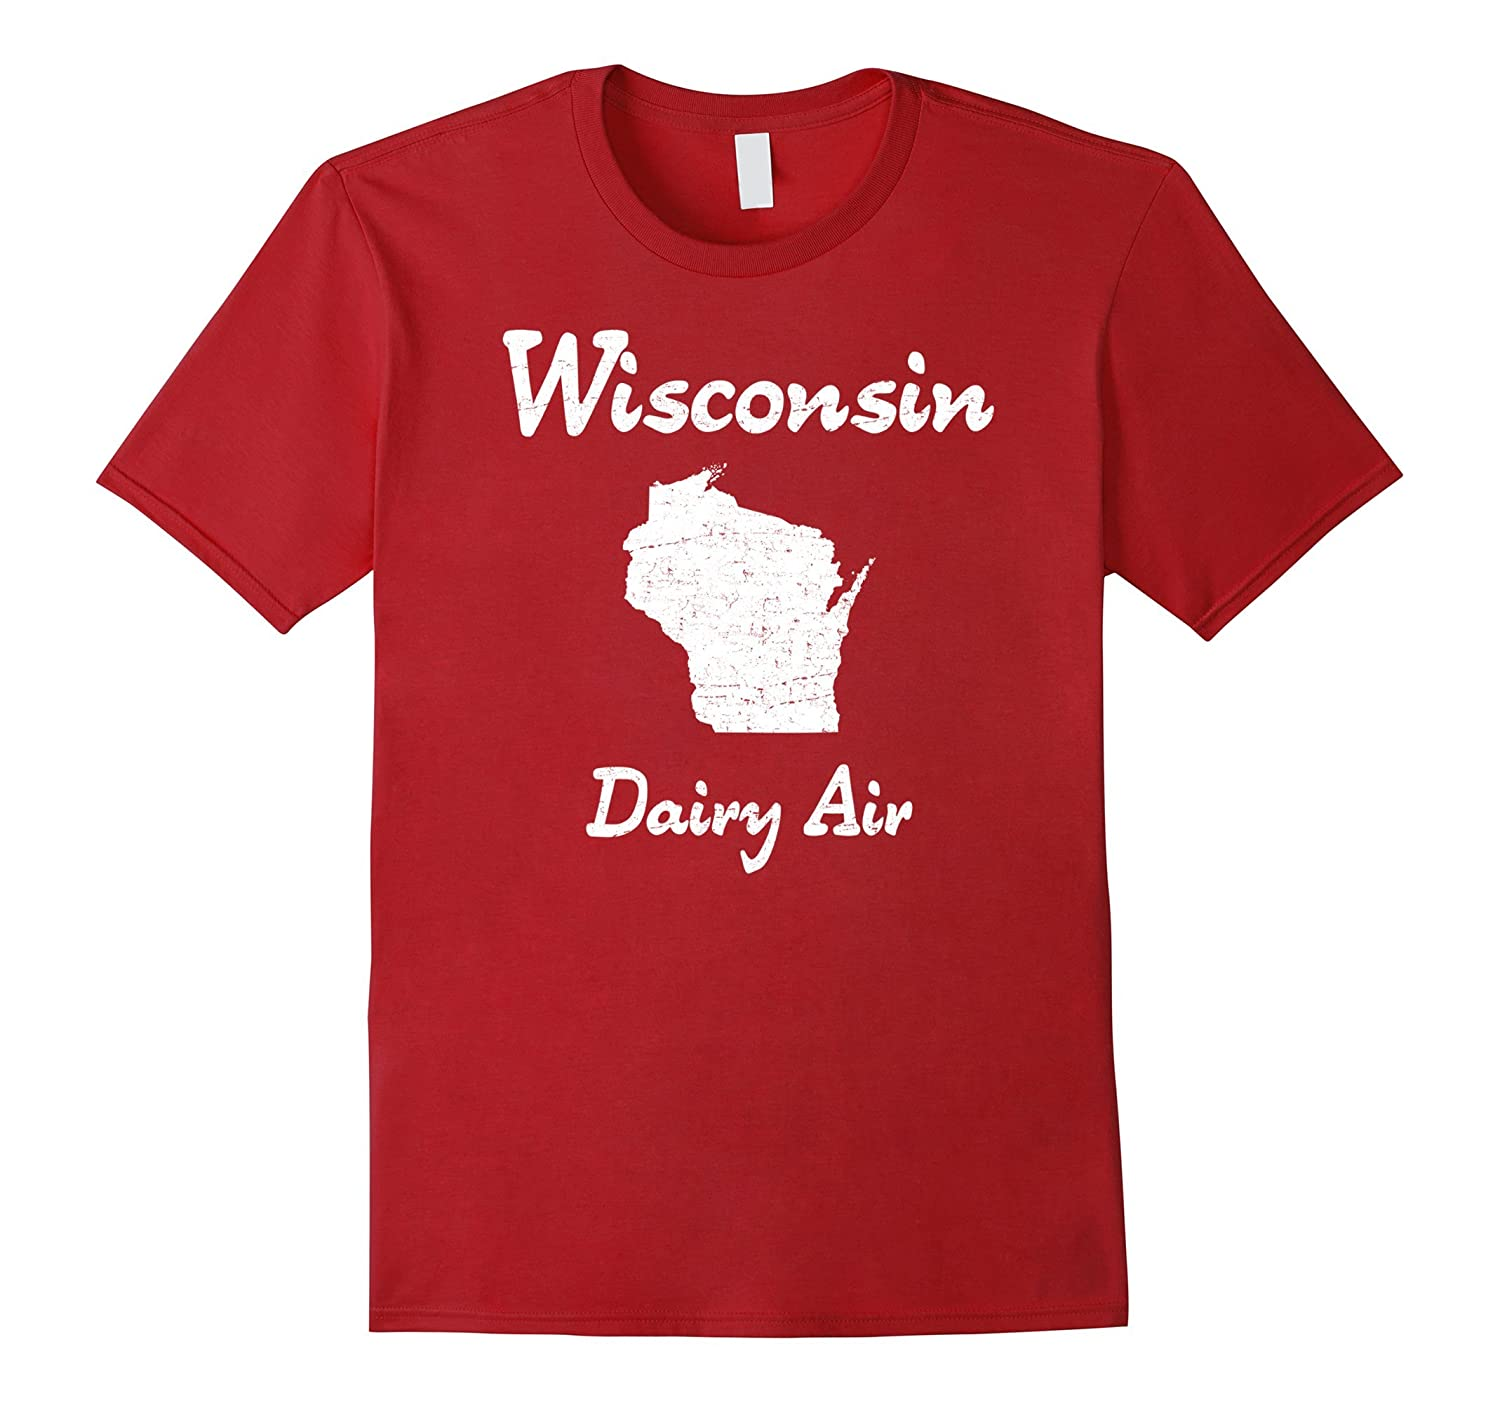 """""""Wisconsin Dairy Air"""" awesome sconnie cow pasture t-shirt"""